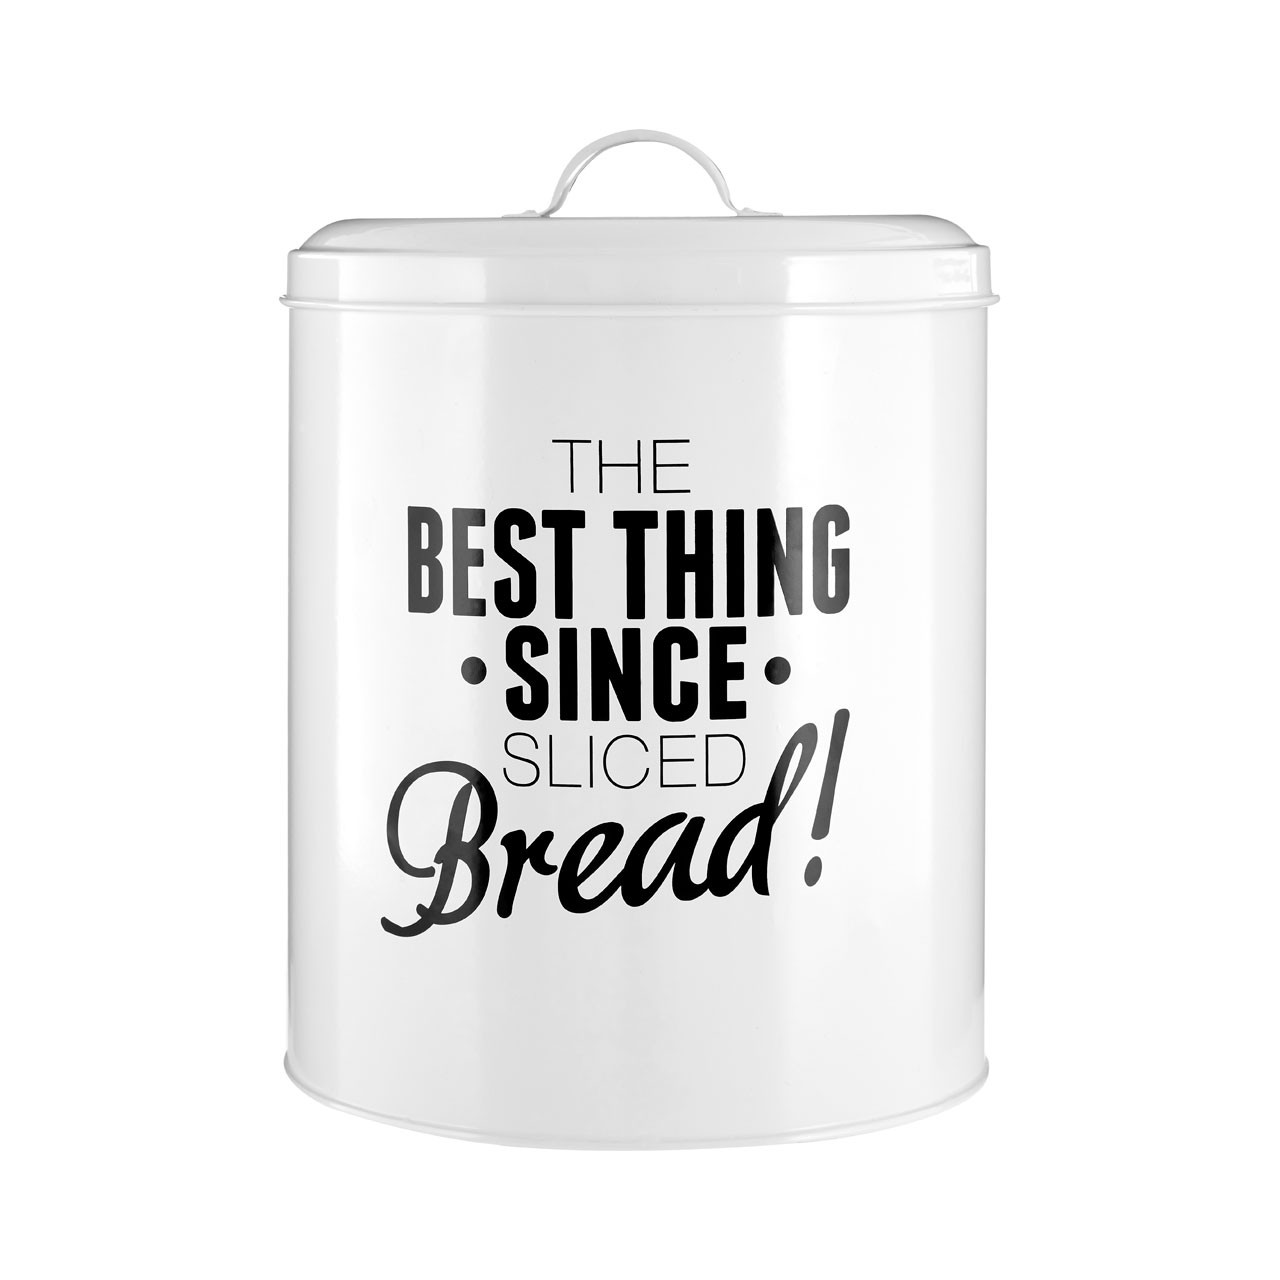 Prime Furnishing Pun & Games Bread Bin